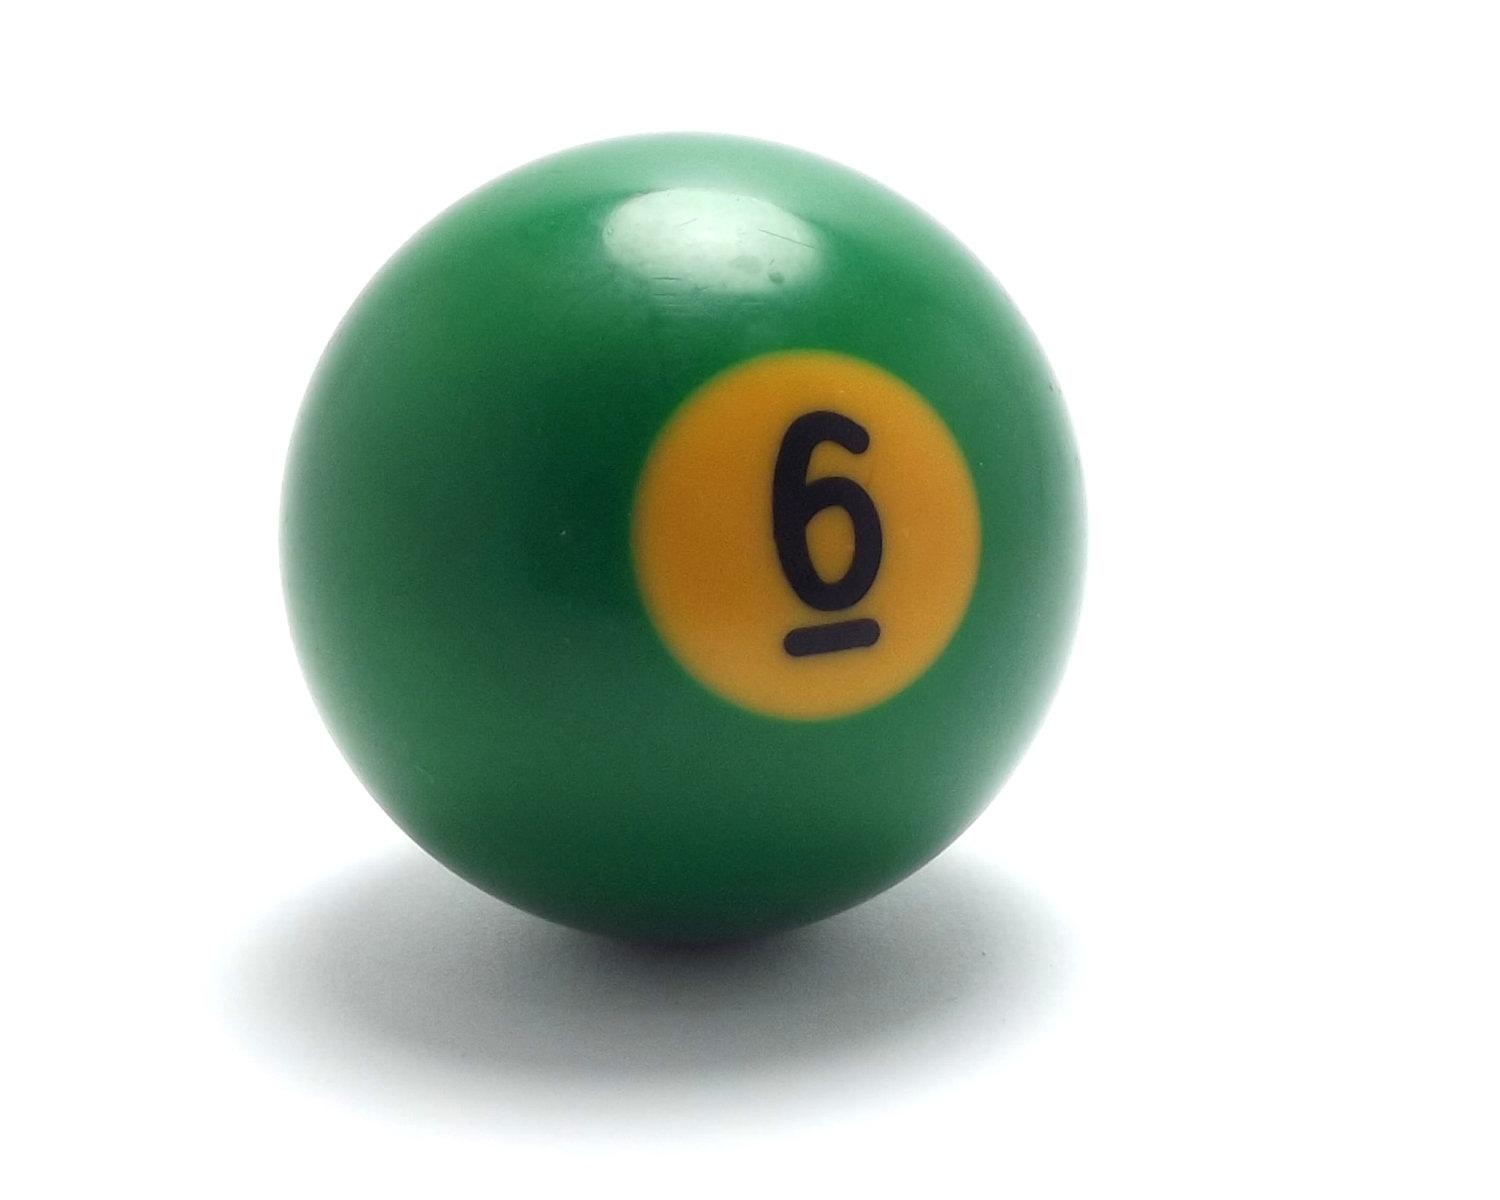 picture-of-the-number-6-pool-ball